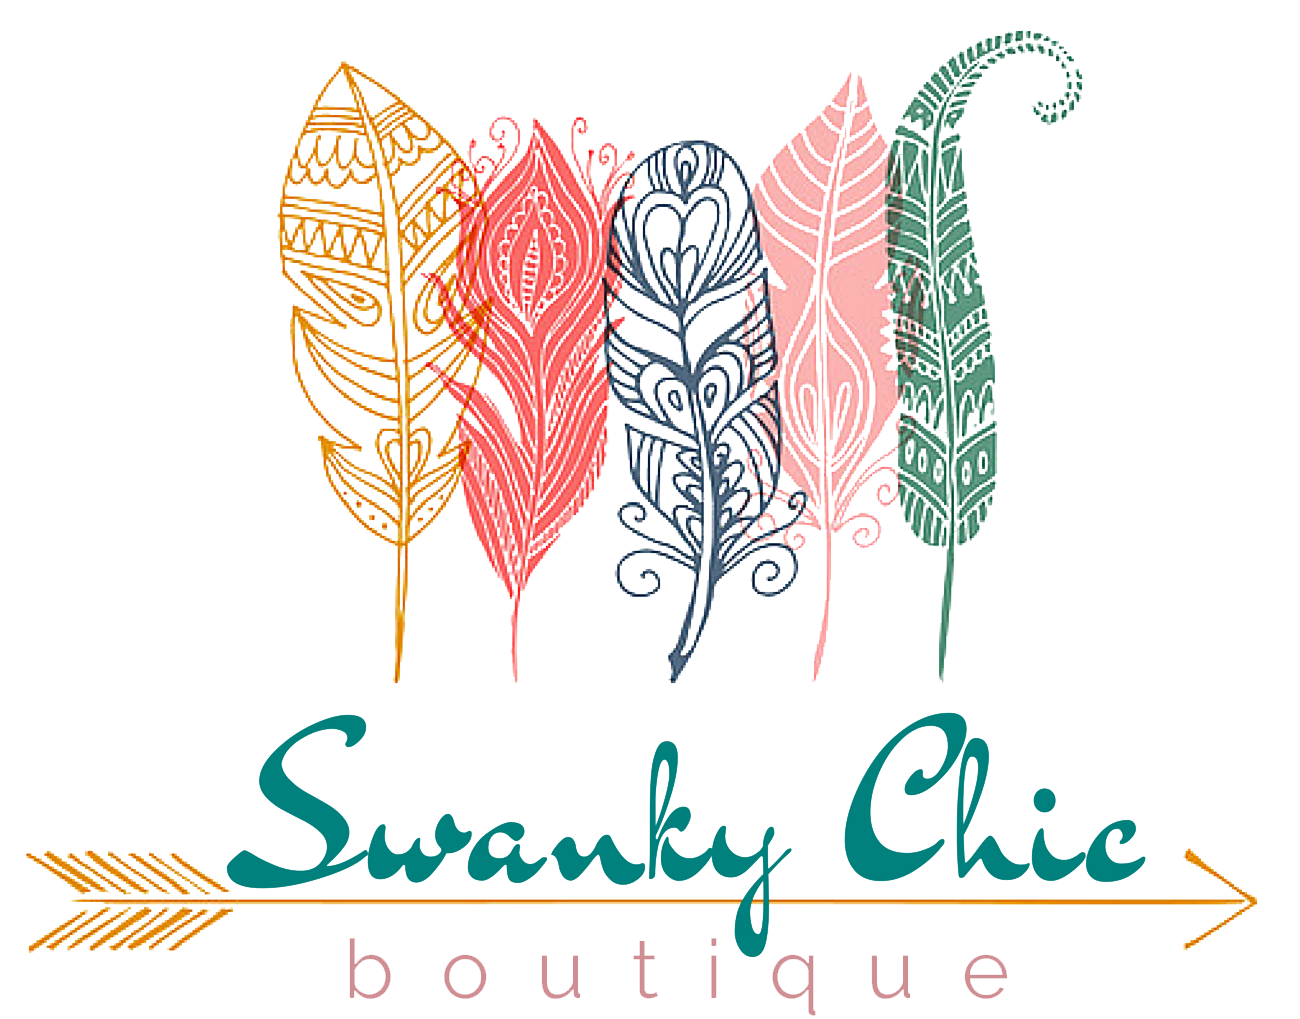 Swanky Chic Boutique